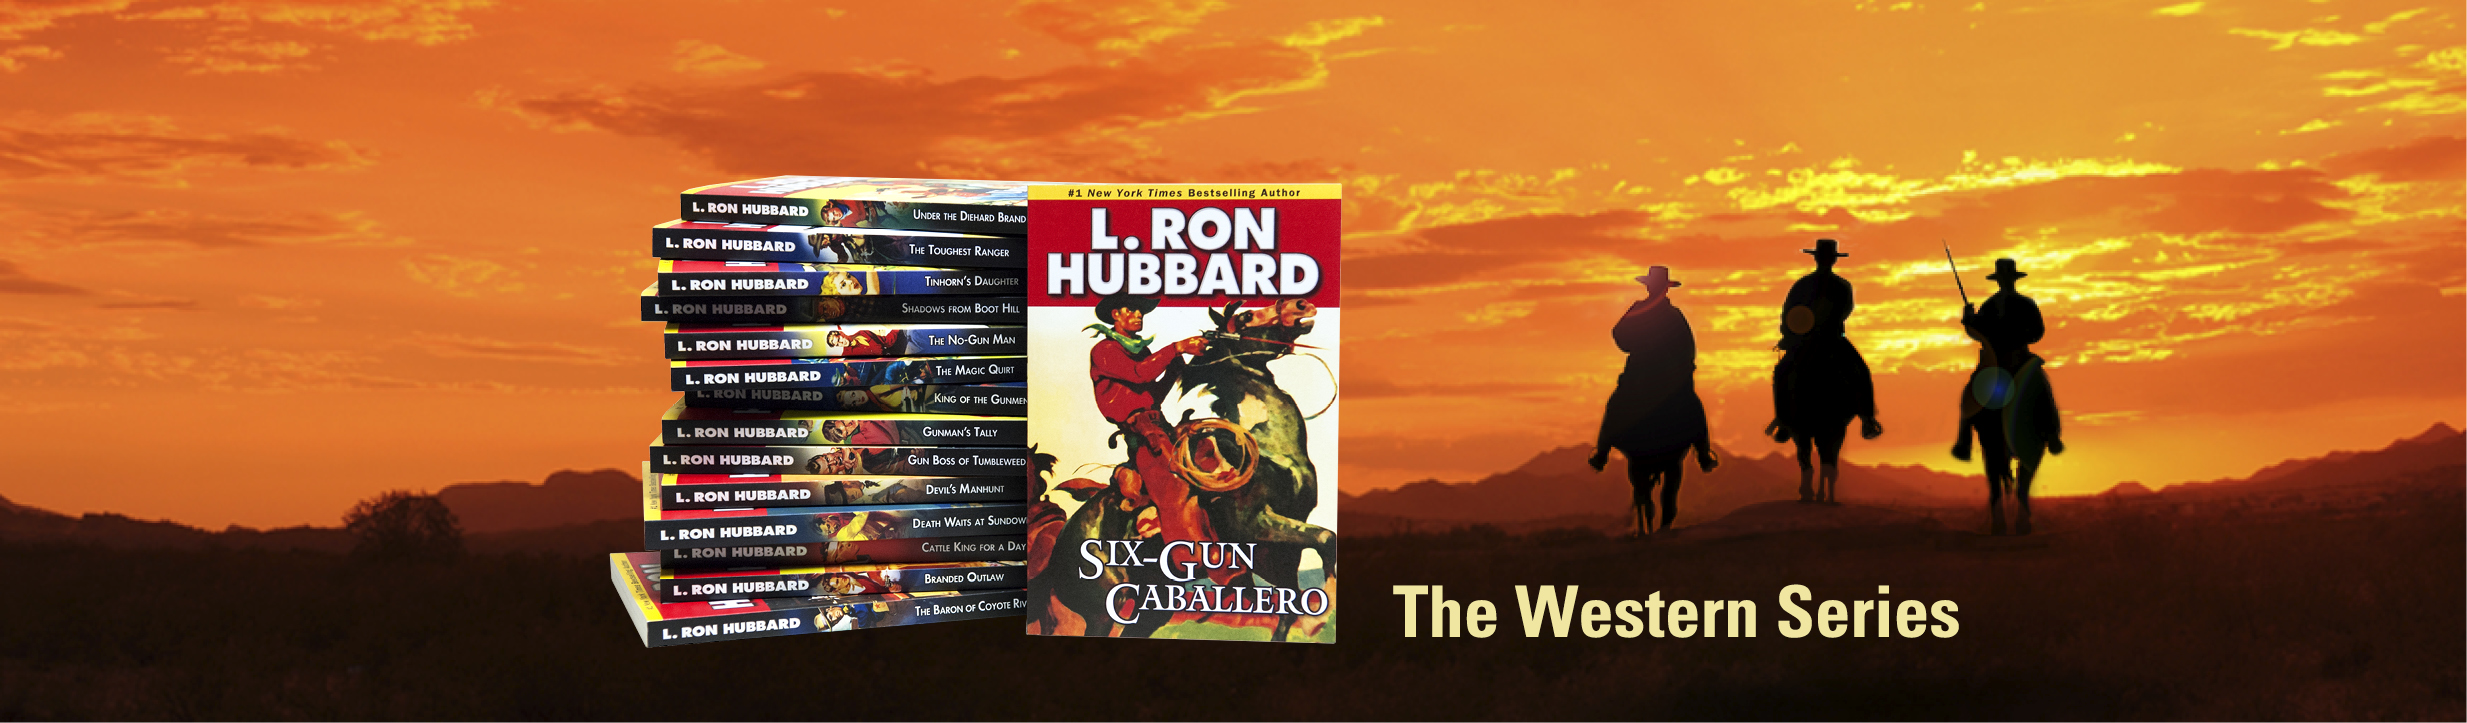 The Western Series